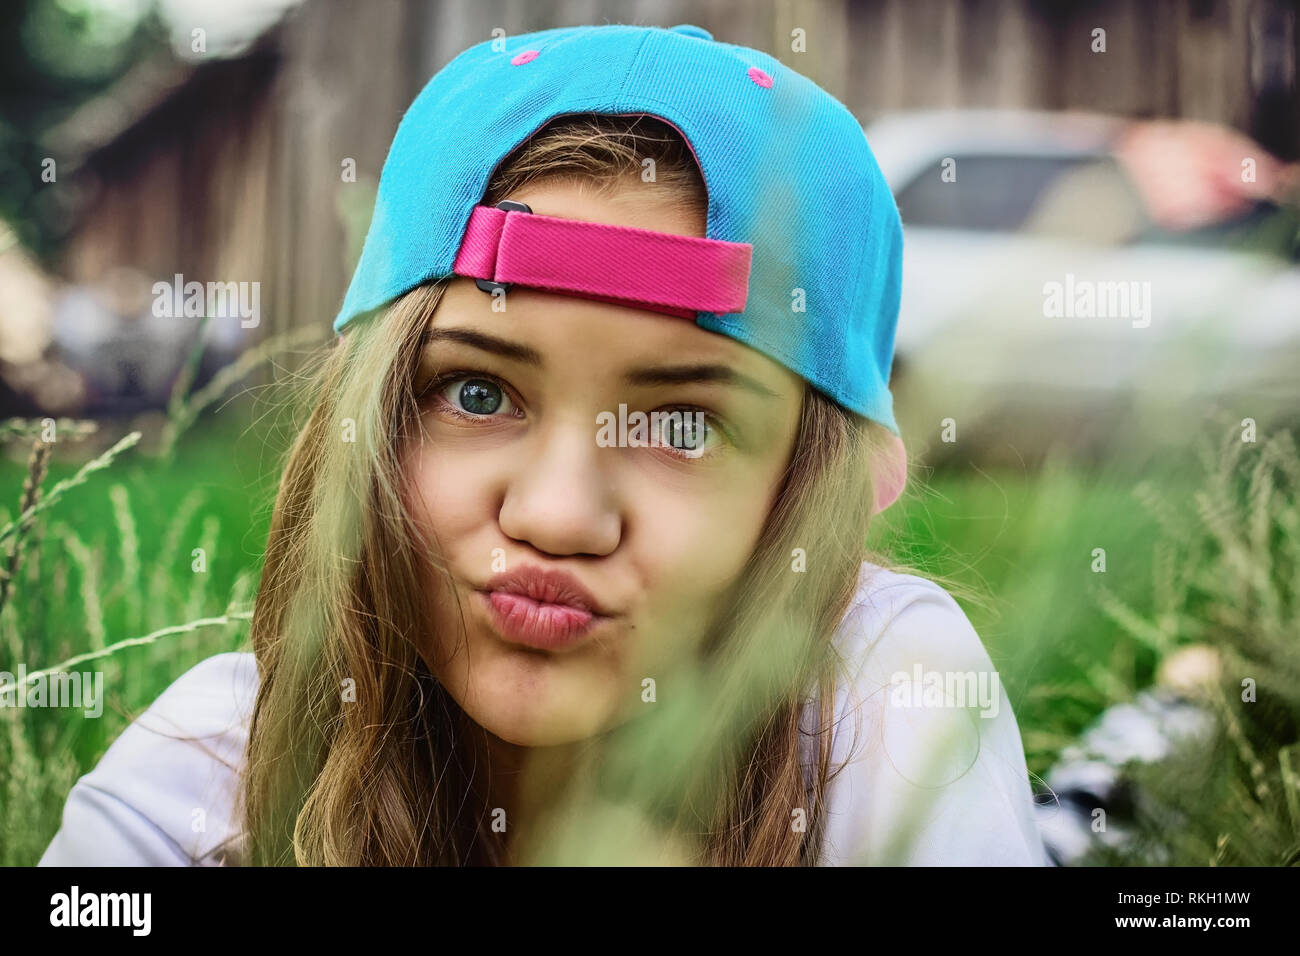 A teenager girl in a blue baseball cap is lying on the grass in the village and is grimacing or blowing a kiss. Serene outdoor recreation. Female port - Stock Image